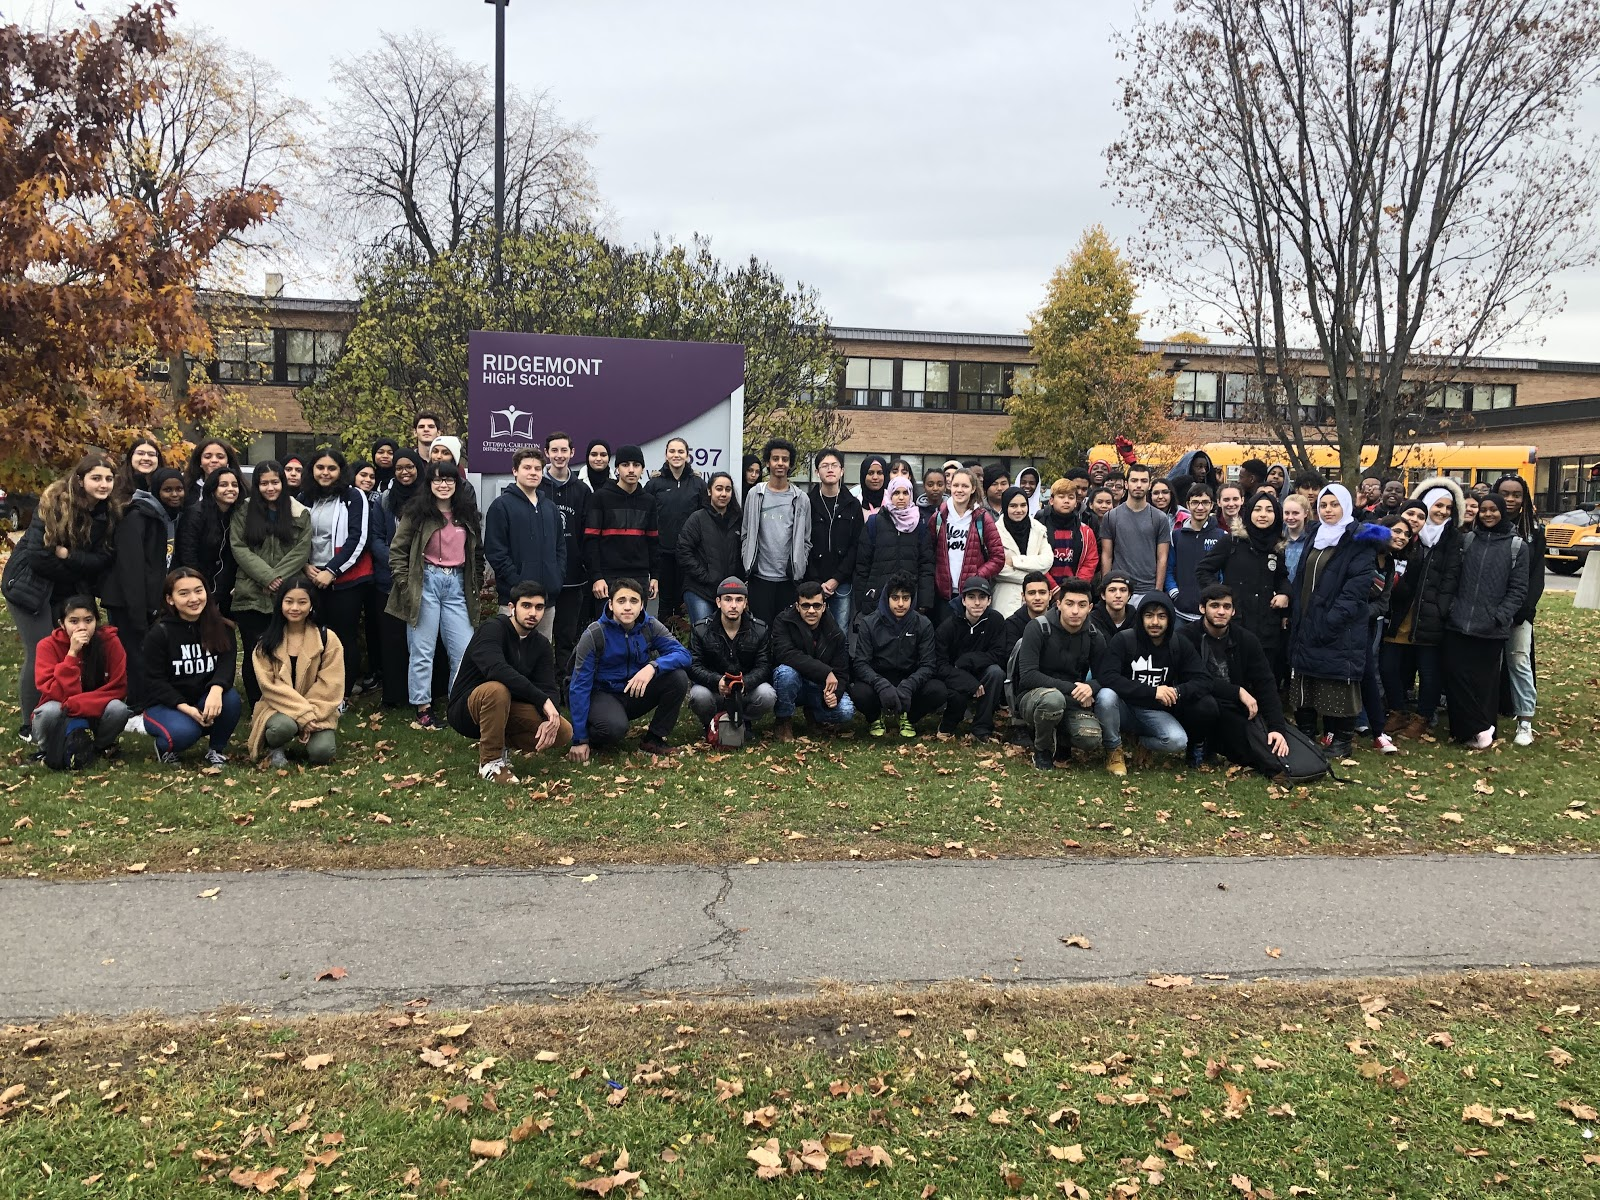 Group of students from Ridgemont pictured in front of the school